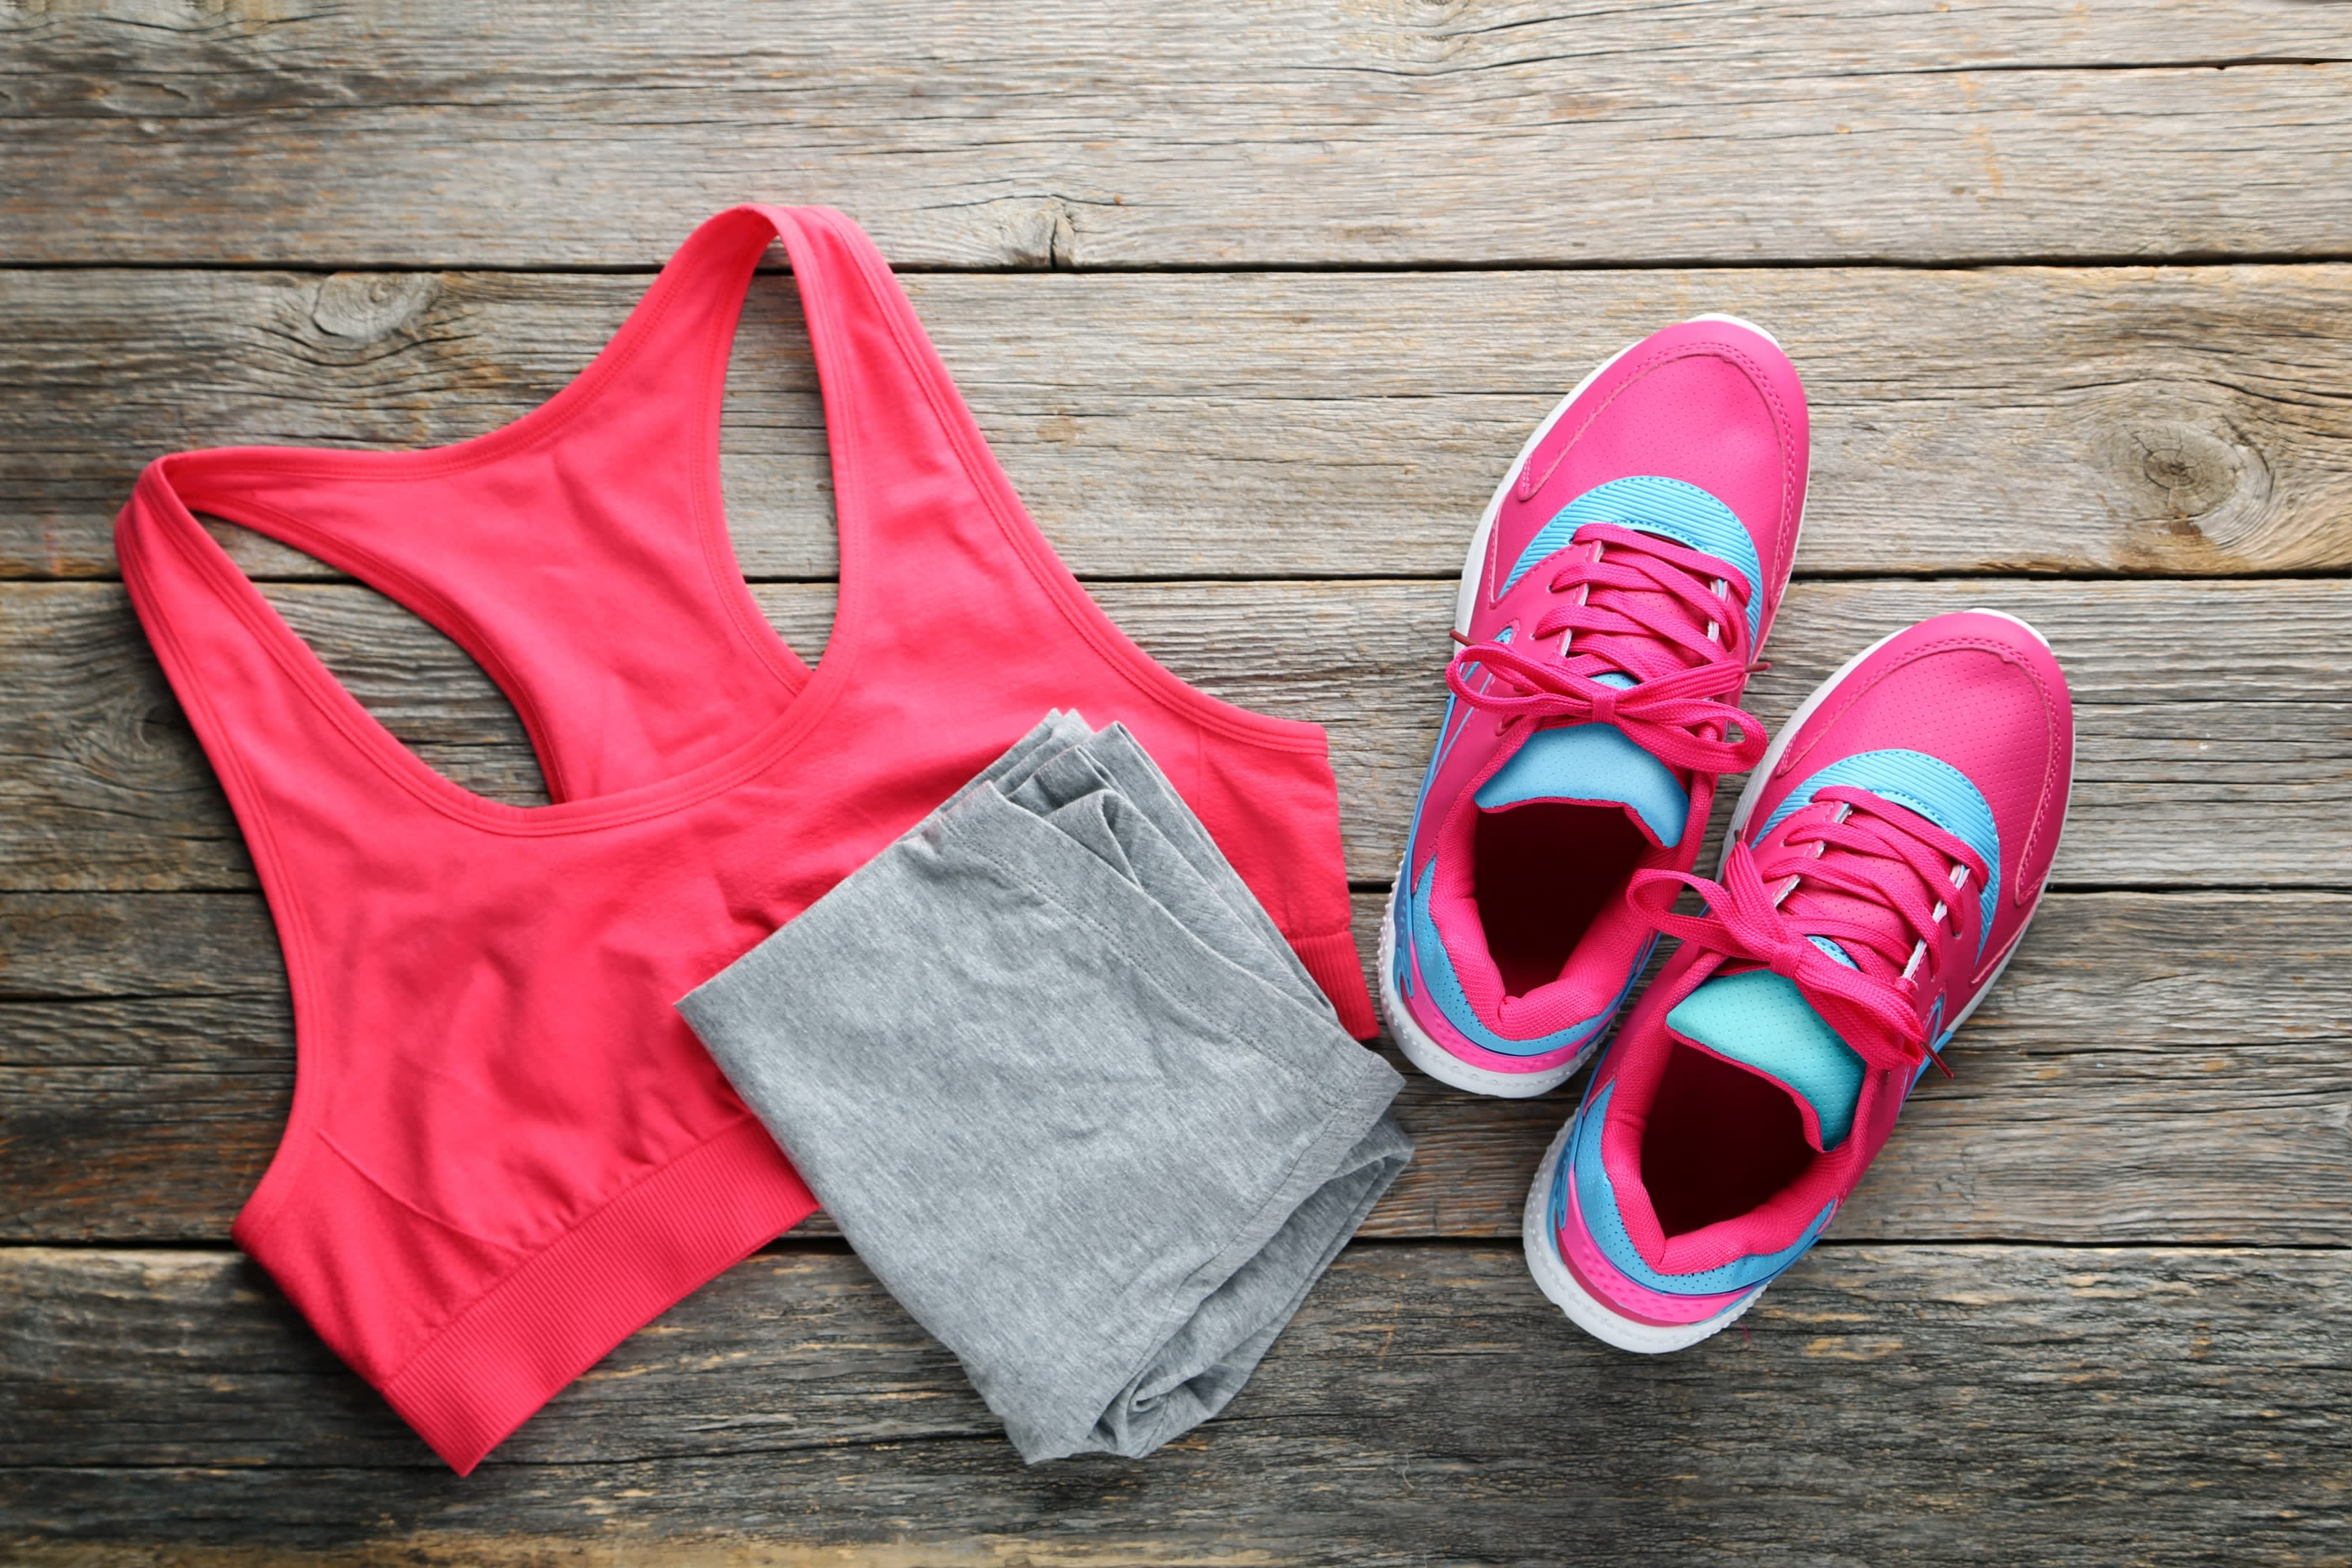 A sports bra, shorts, and running shoes expertly arranged for Product Photography